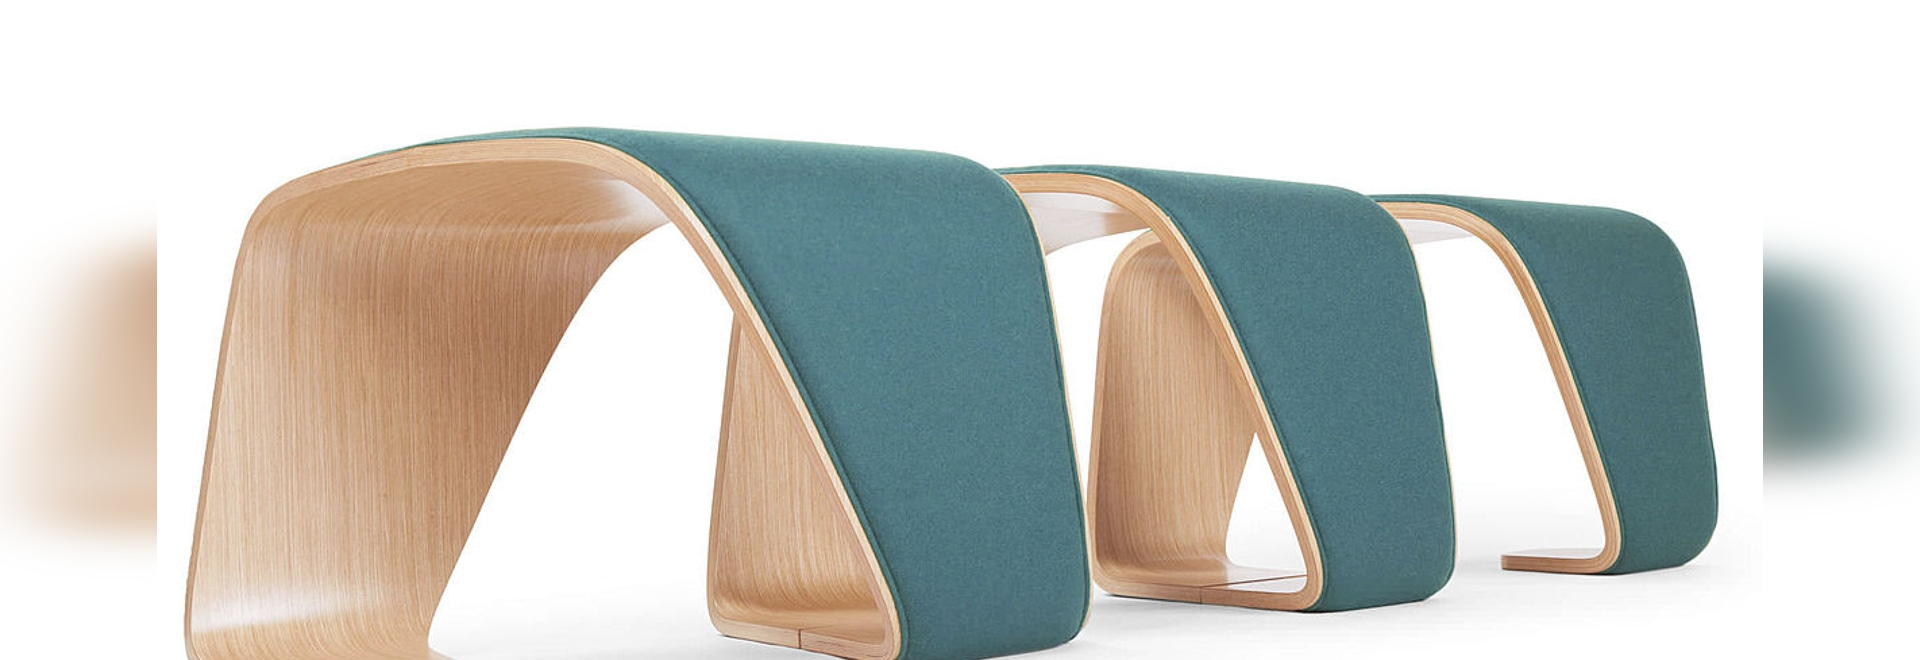 banc contemporain - True Design srl